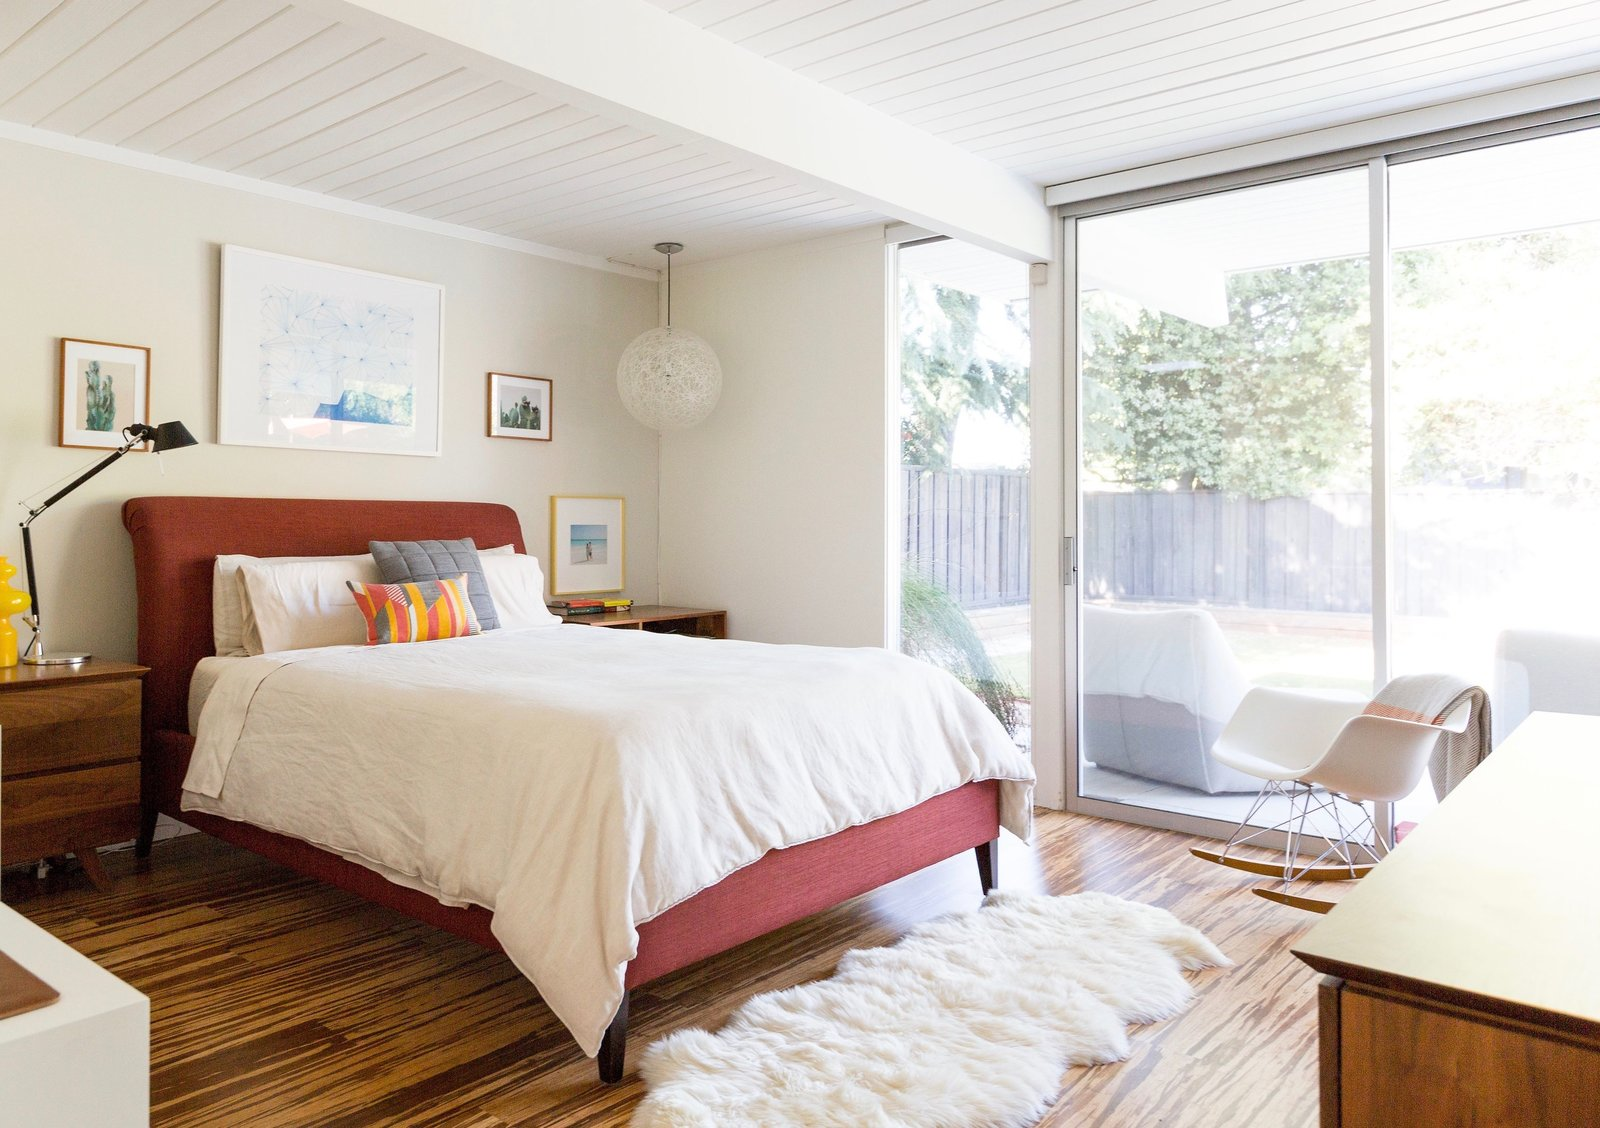 Bedroom, Bed, Night Stands, Pendant, Dresser, Rockers, Medium Hardwood, Table, Rug, and Lamps  Bedroom Medium Hardwood Pendant Rockers Photos from An Interior Designer Launches Her Career by Renovating Her Family's Midcentury Eichler